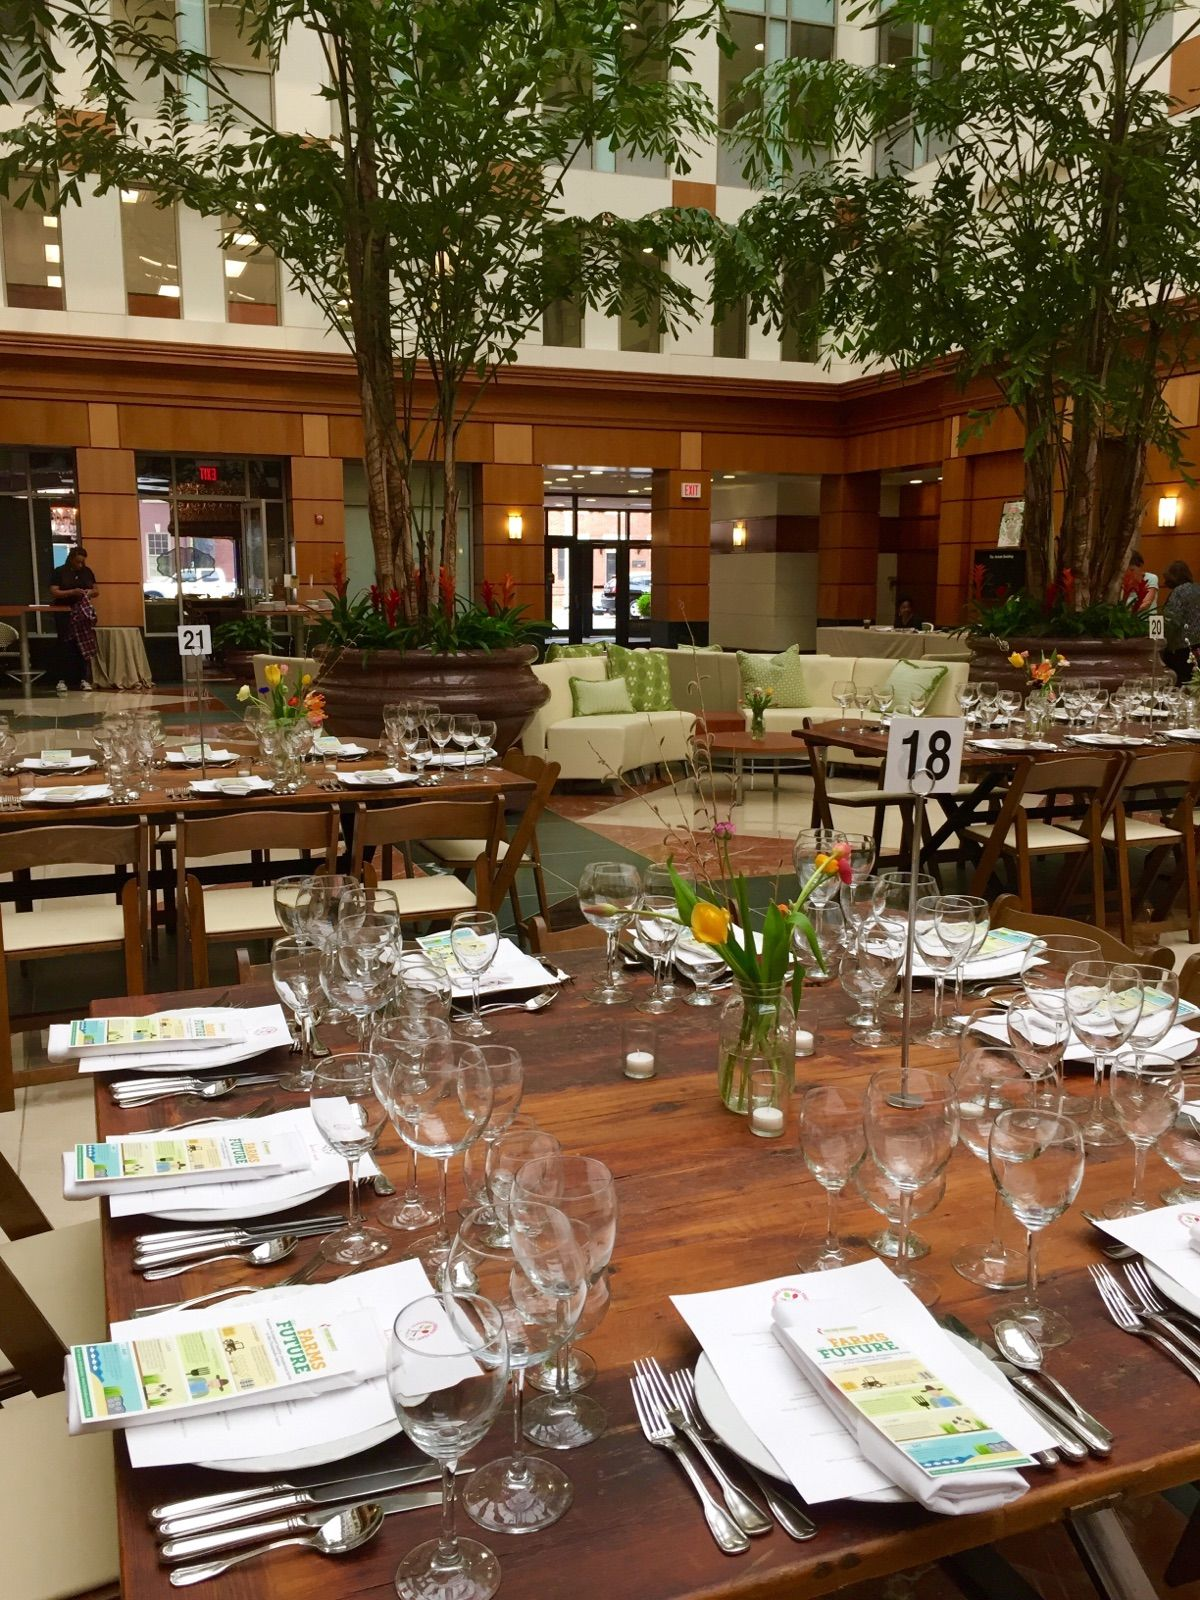 Rustic Farm Tables For Foodshed Feast At Society Fair Private Event Old Town Alexandria